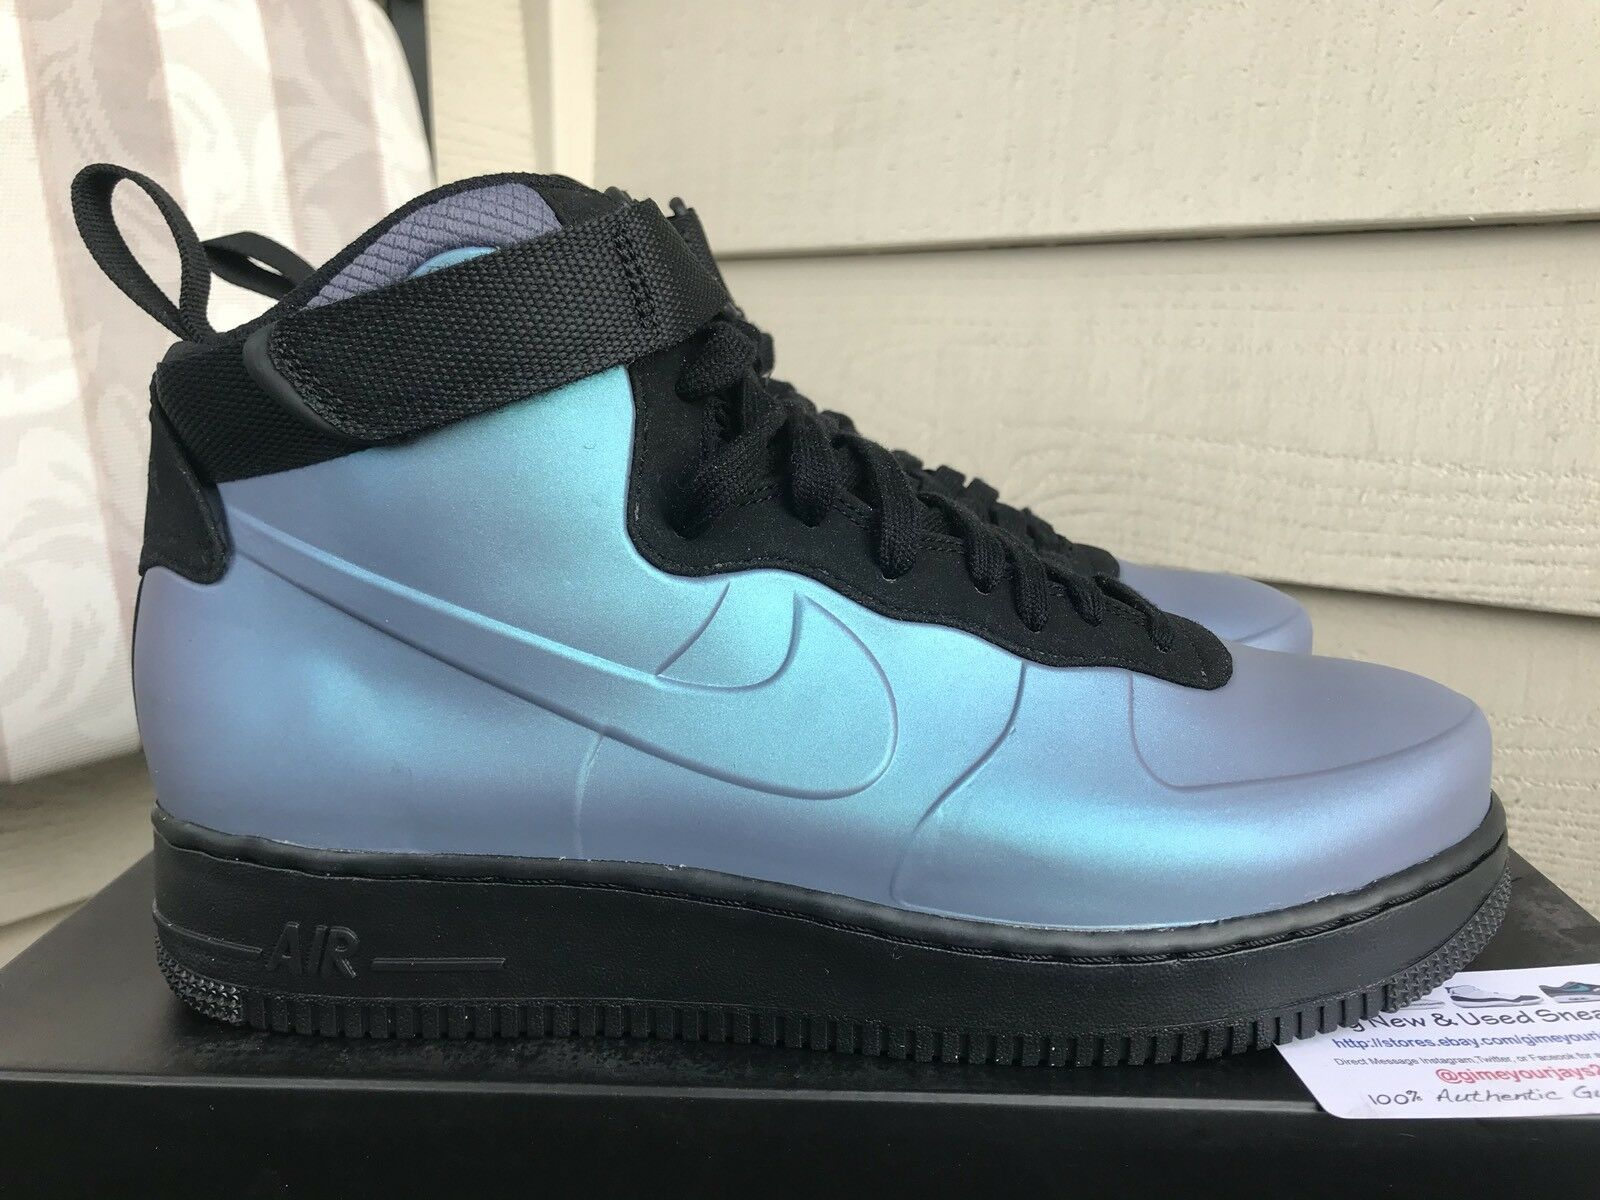 Nike Air Force 1 Foamposite Cup Light Carbon Comfortable The most popular shoes for men and women